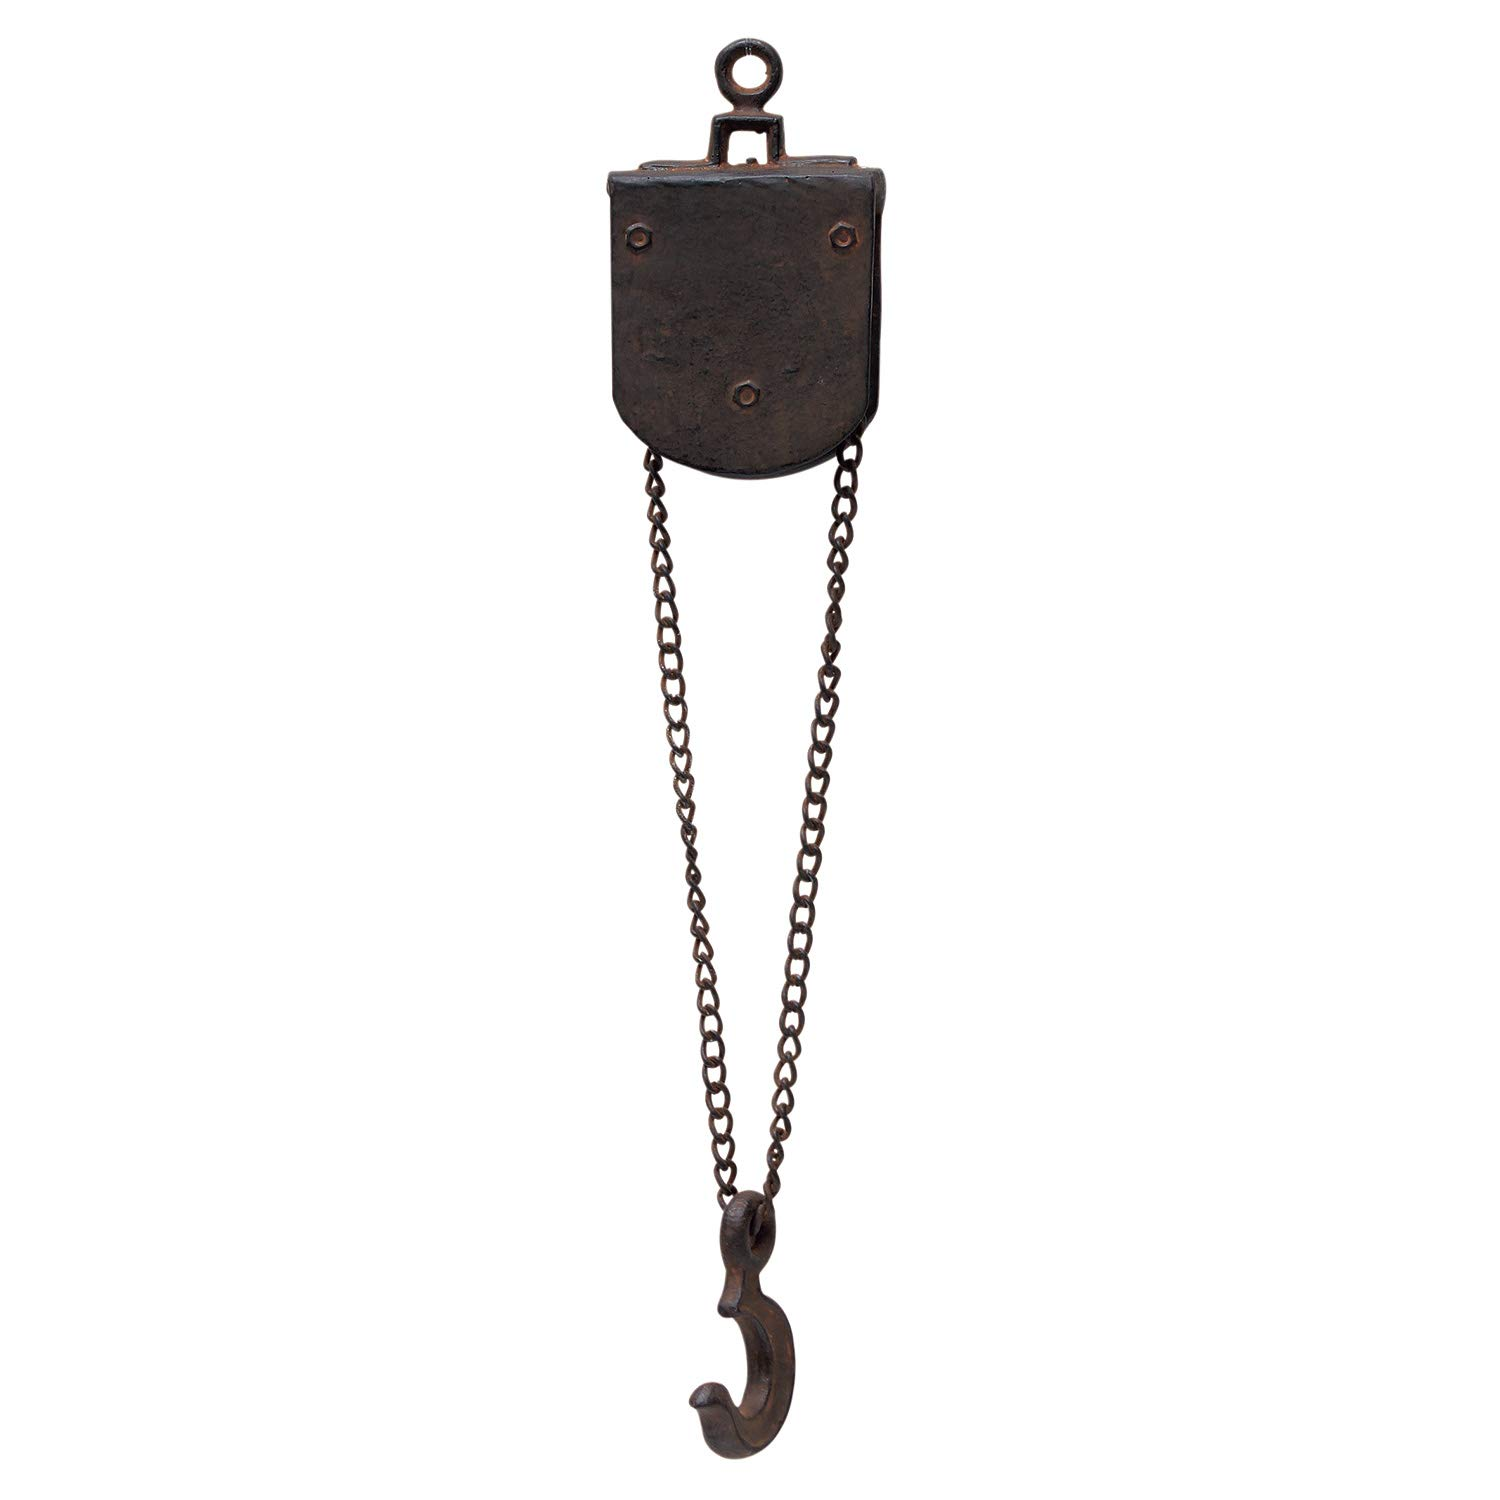 Time Concept Faux Hanging Pulley Chain with Hook - Square - Vintage Factory Style, Artificial Tool, Home Décor